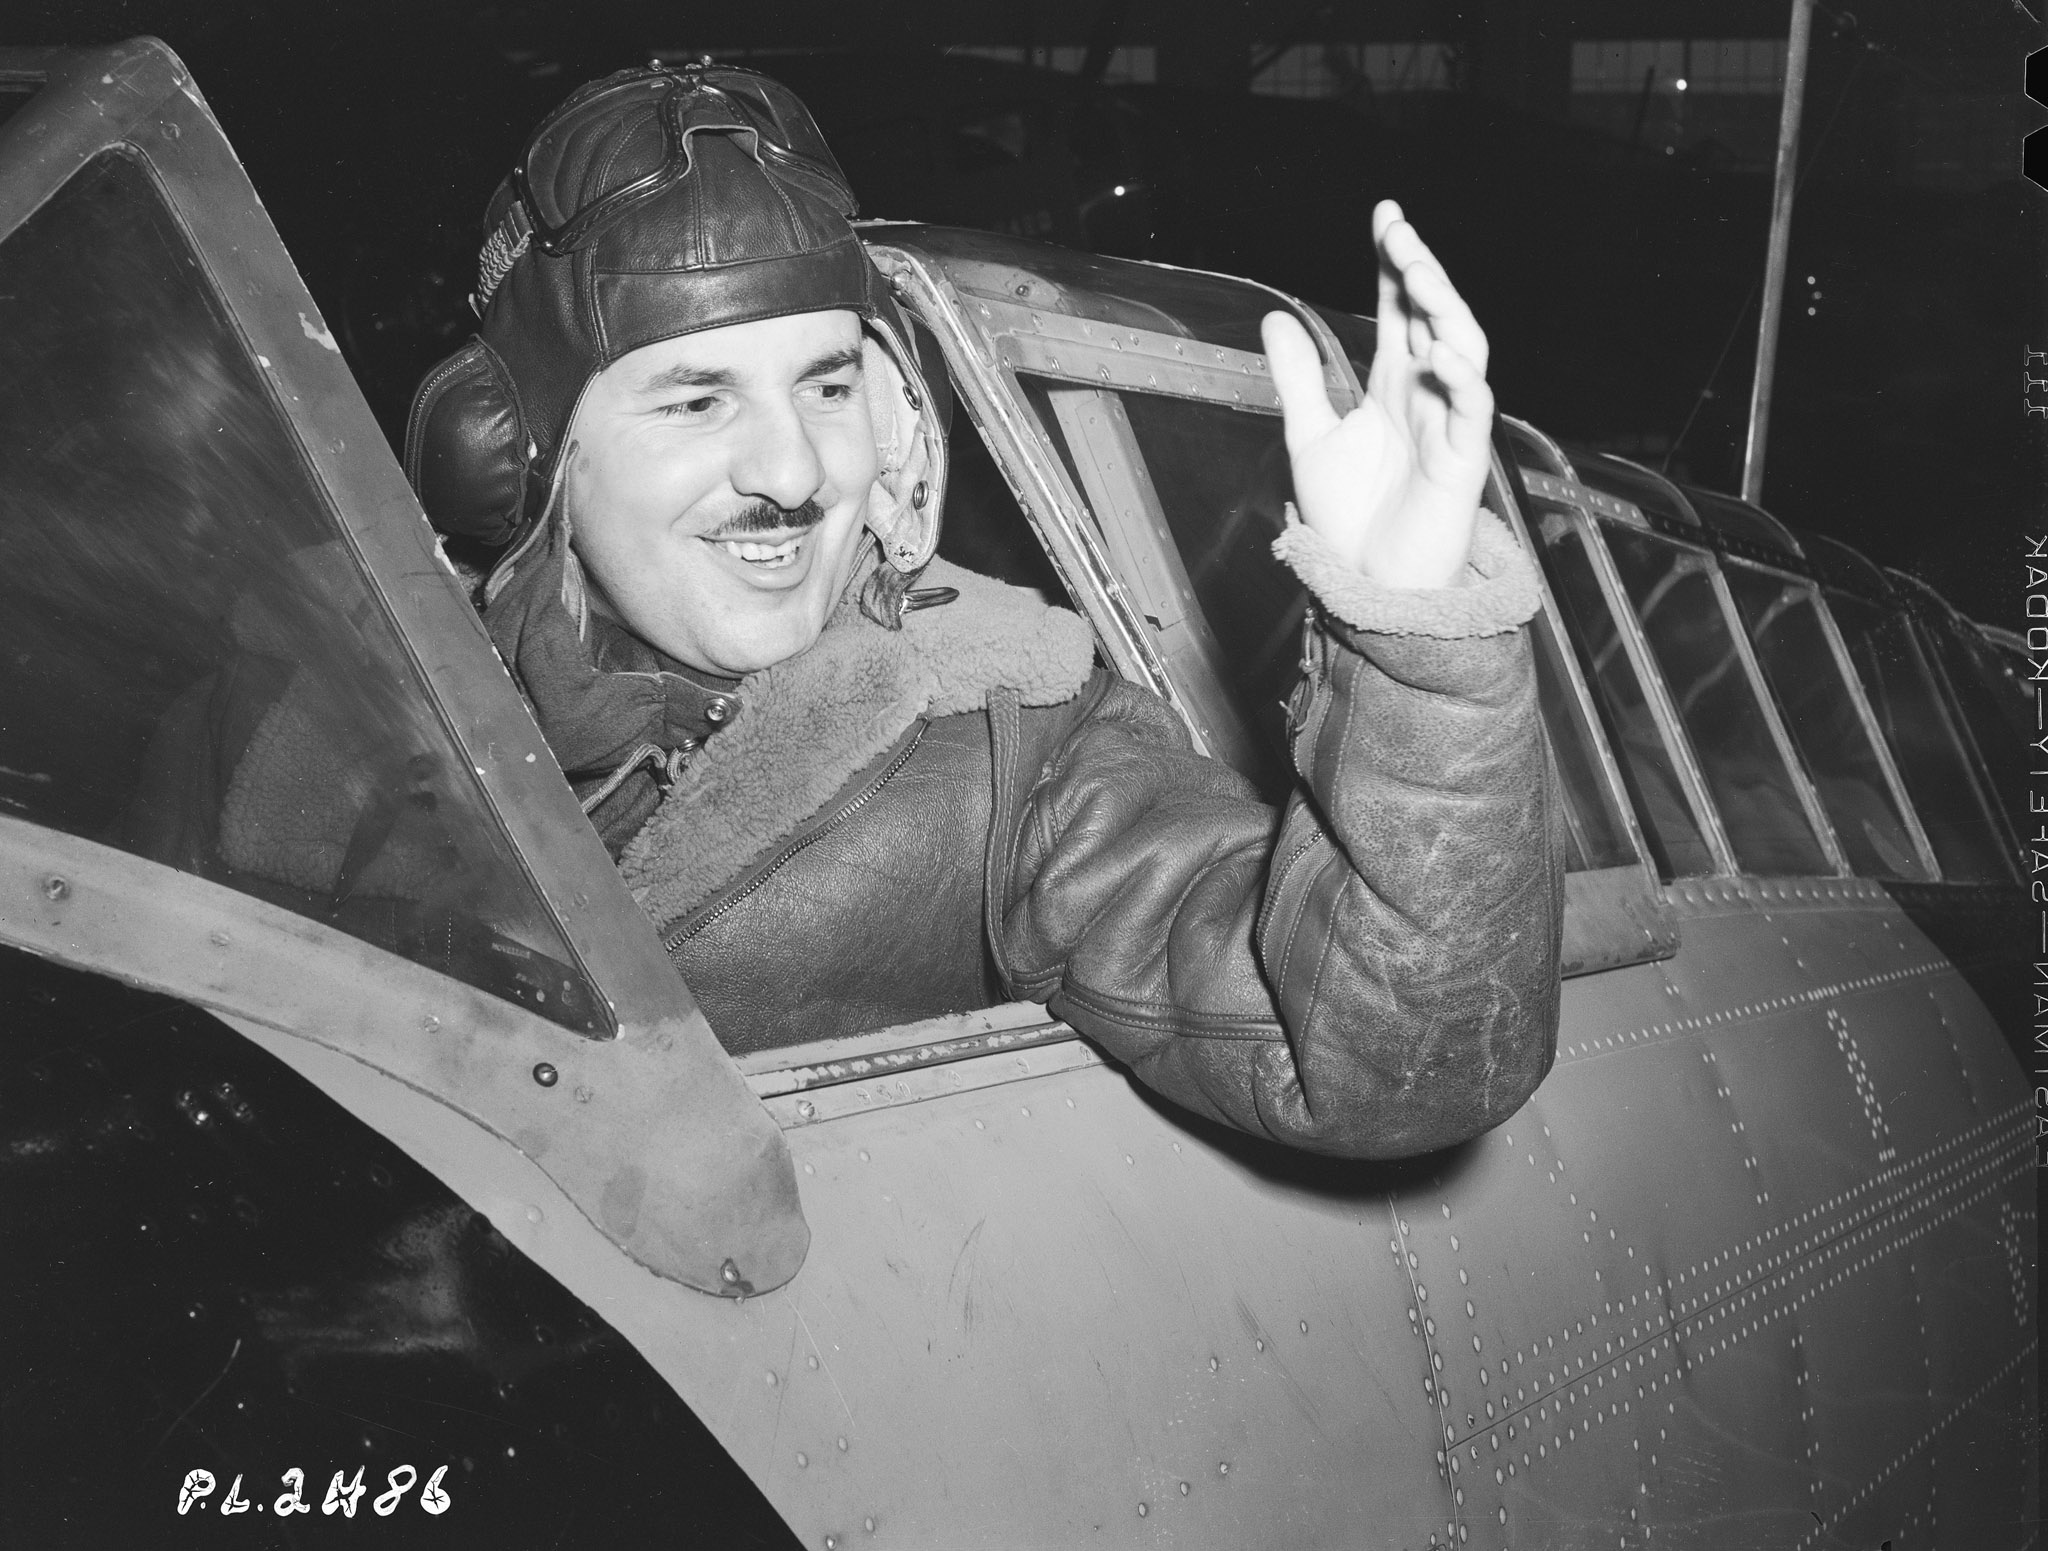 Fight Lieutenant Jean-Paul Desloges waves from his aircraft on January 22, 1941.